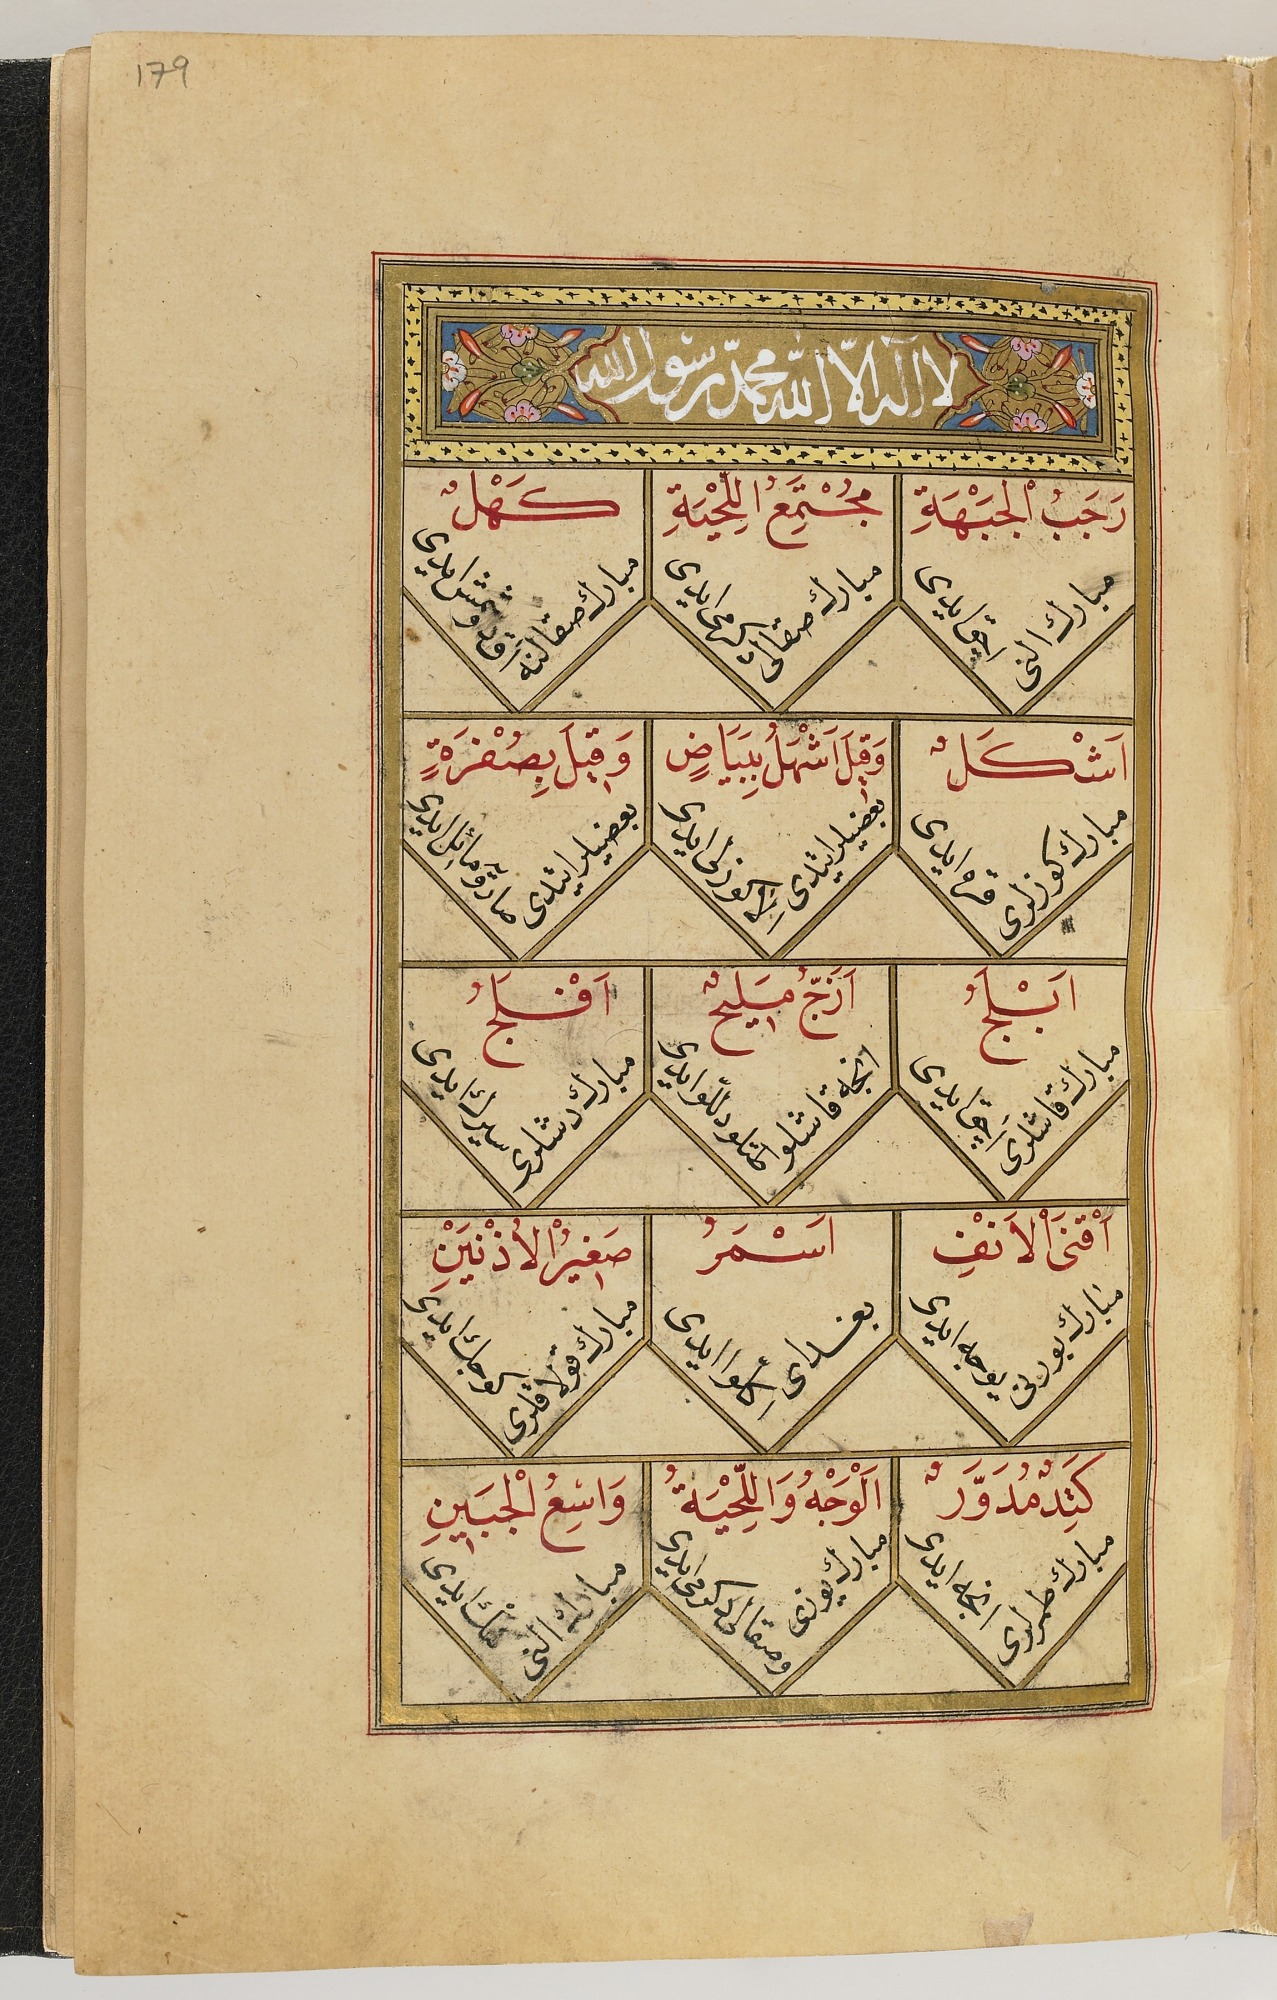 folio 179 recto: Book of prayers